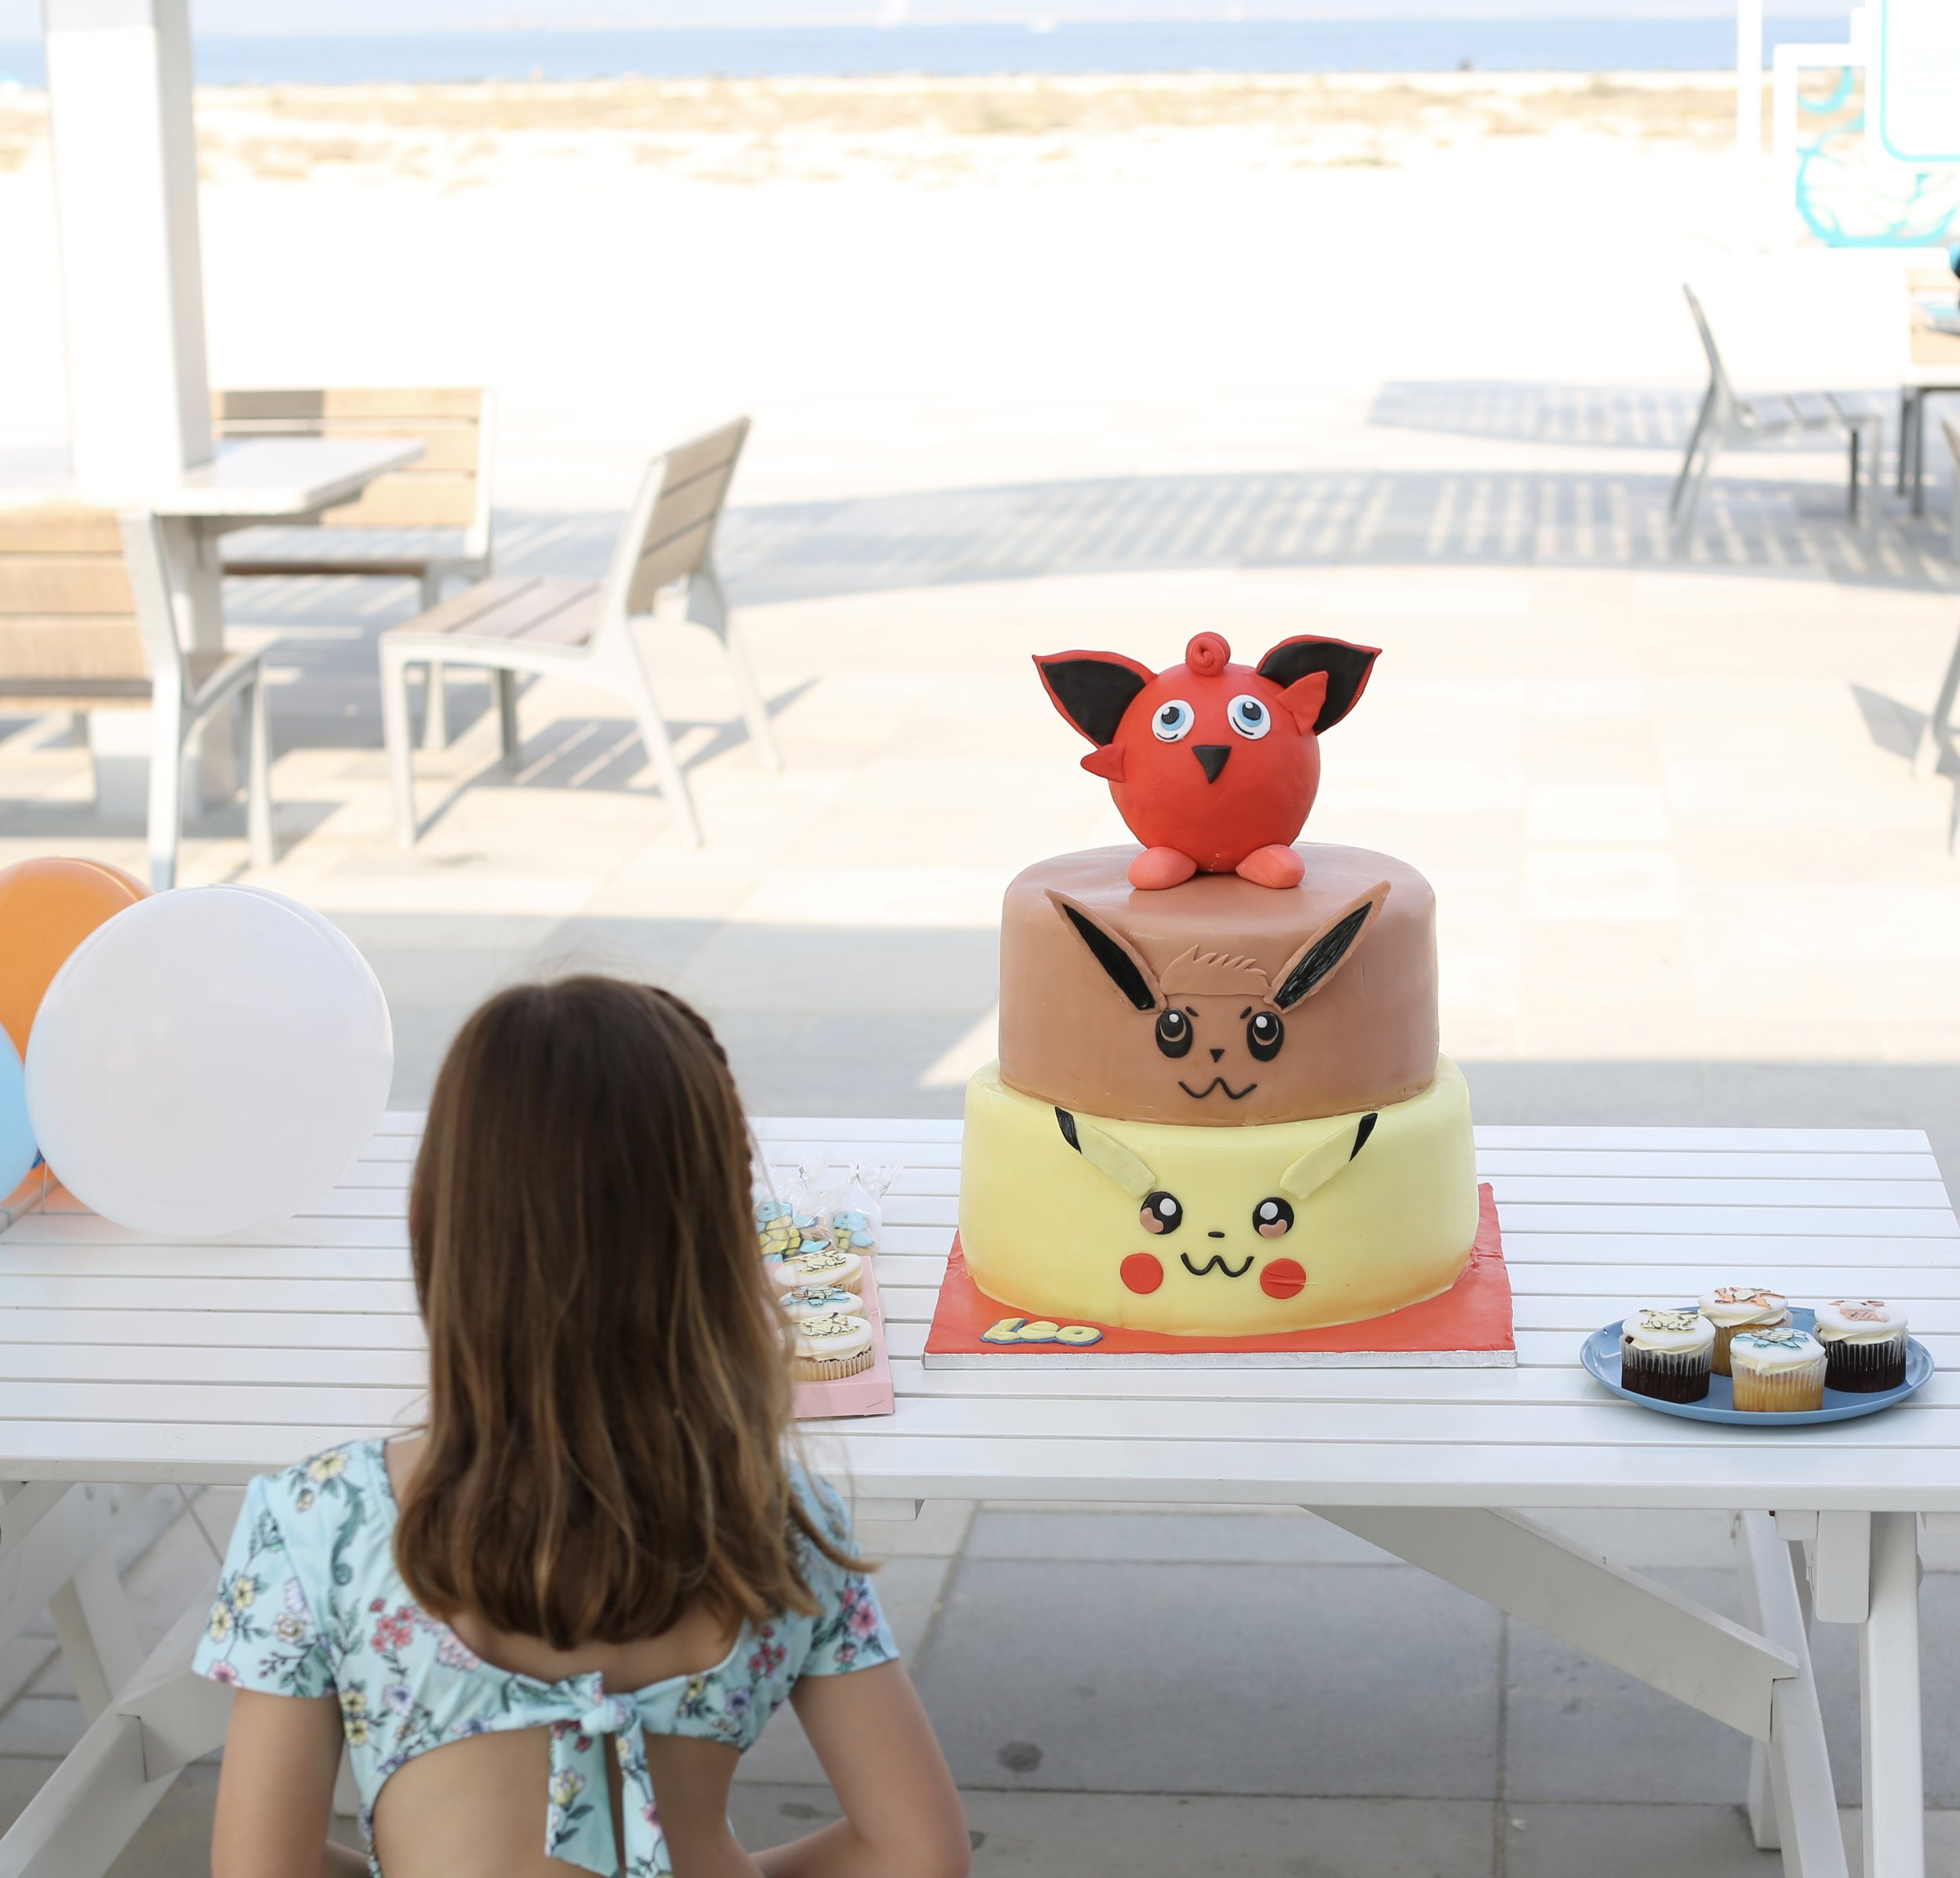 Just a girl standing in front of her three-tier Pokémon cake